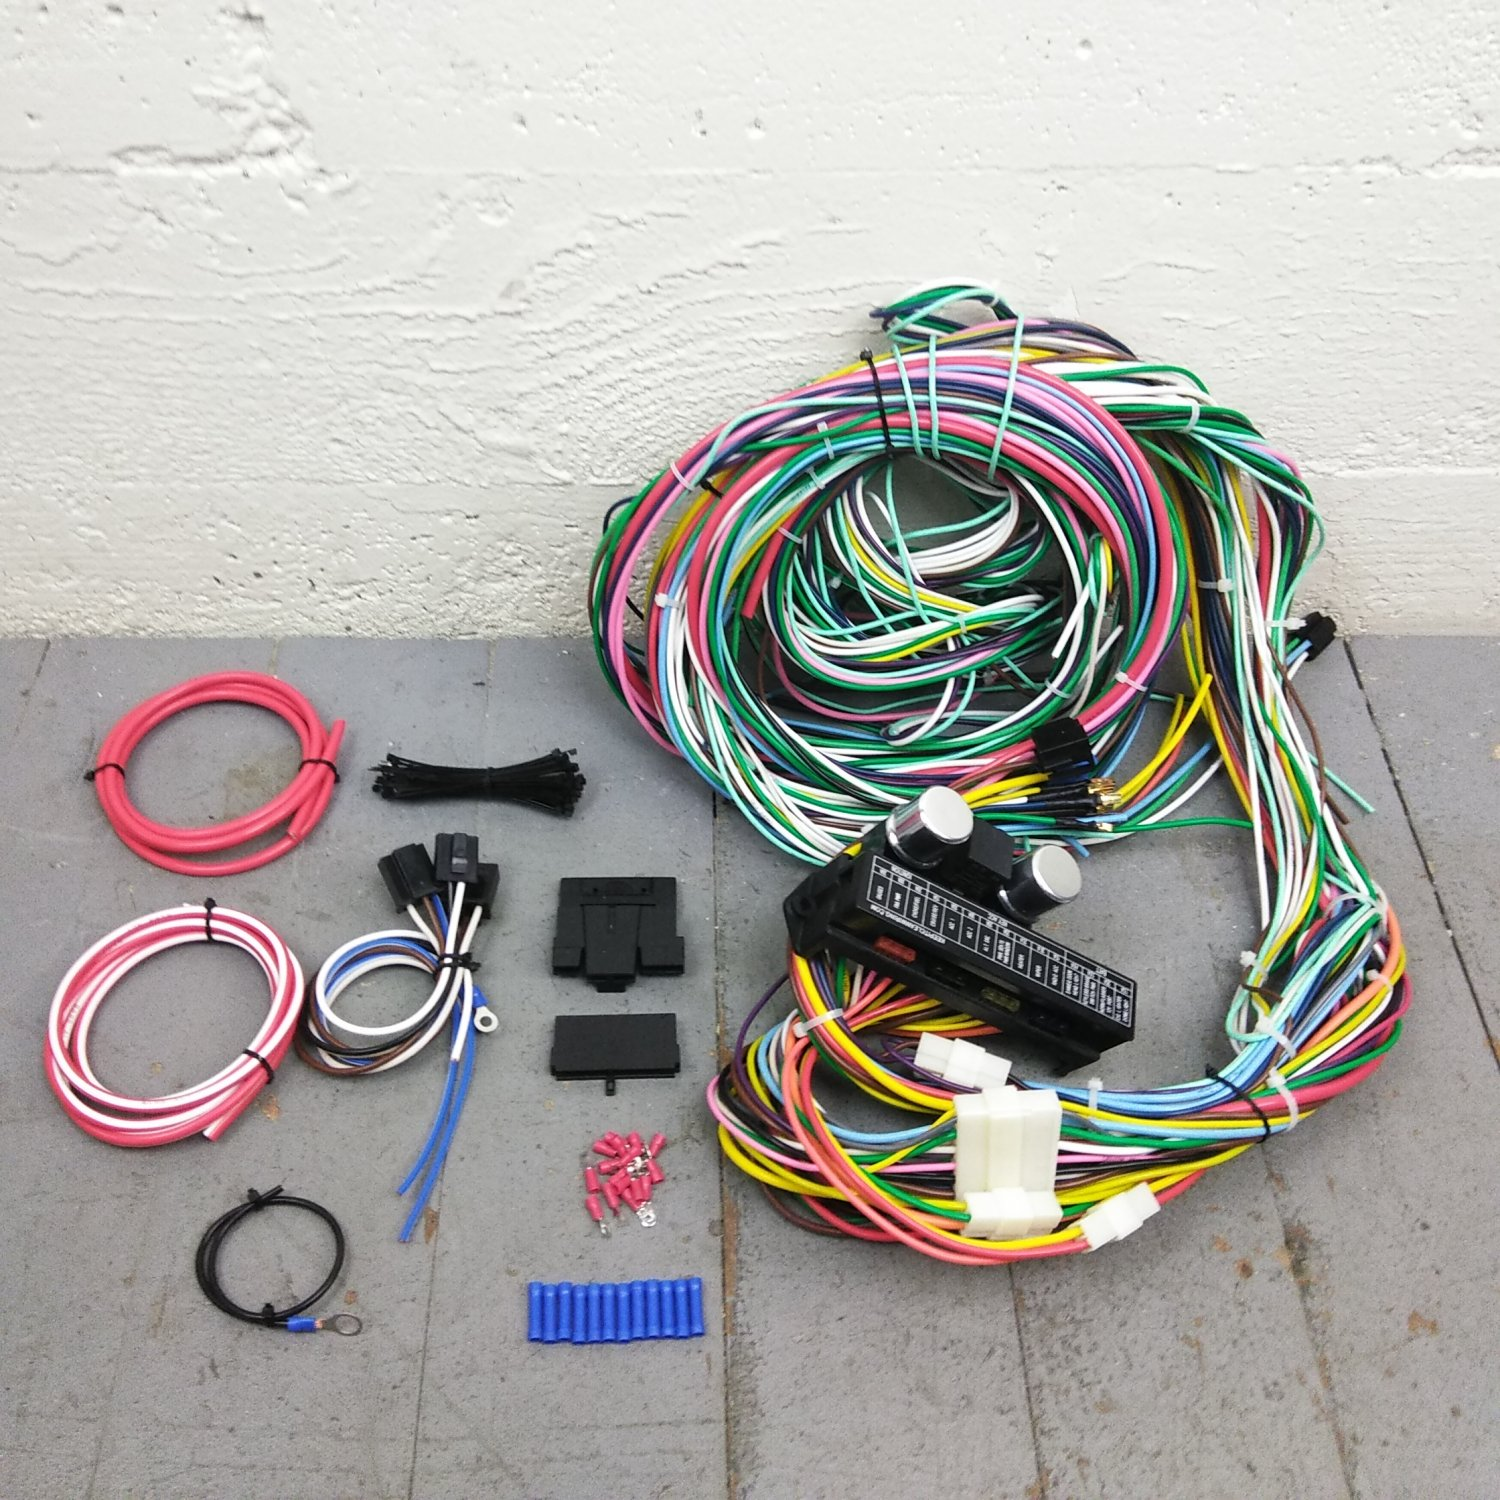 1982 - 1993 Chevrolet S10 2WD Wire Harness Upgrade Kit fits painless new  compact. Bar_Product_Description_C